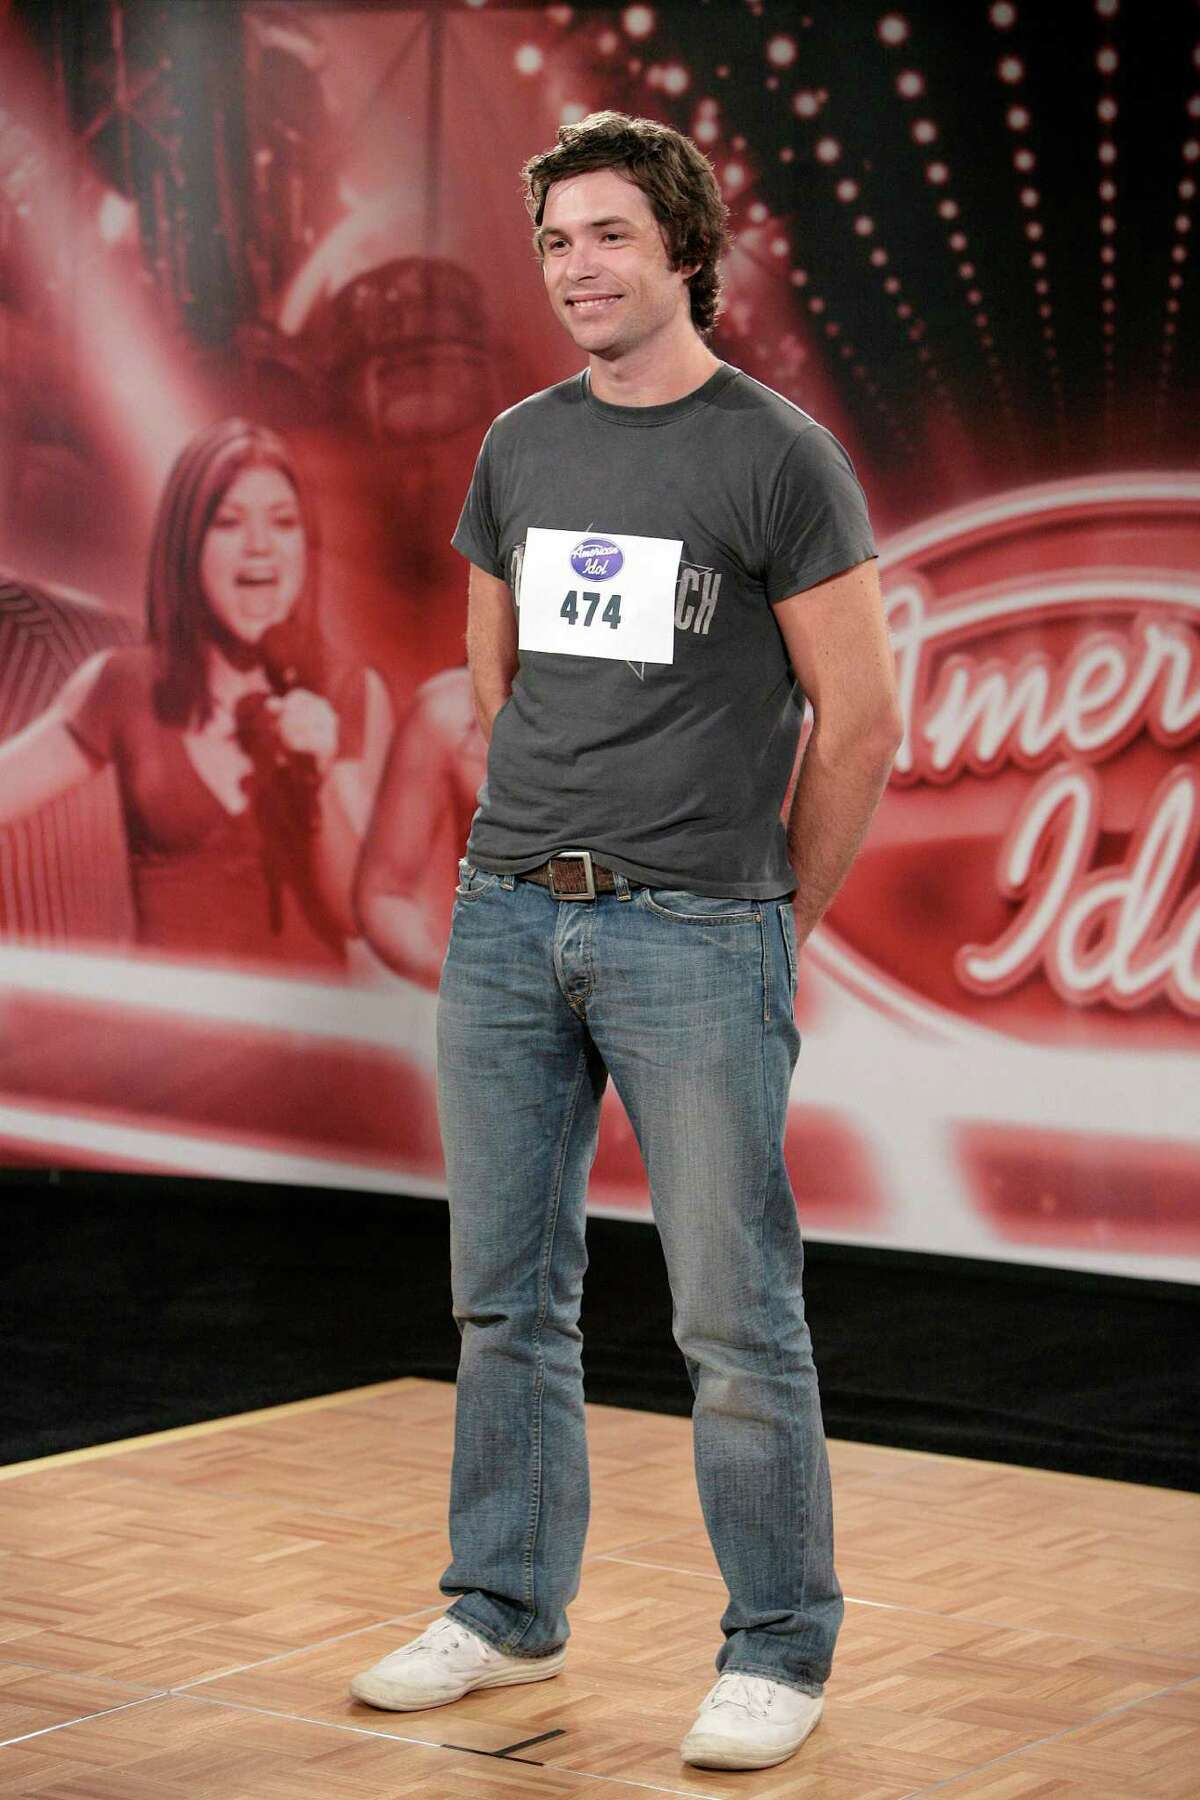 Michael Johns auditions for American Idol season 7 at Qualcomm Stadium on July 30, 2007 in San Diego, California.